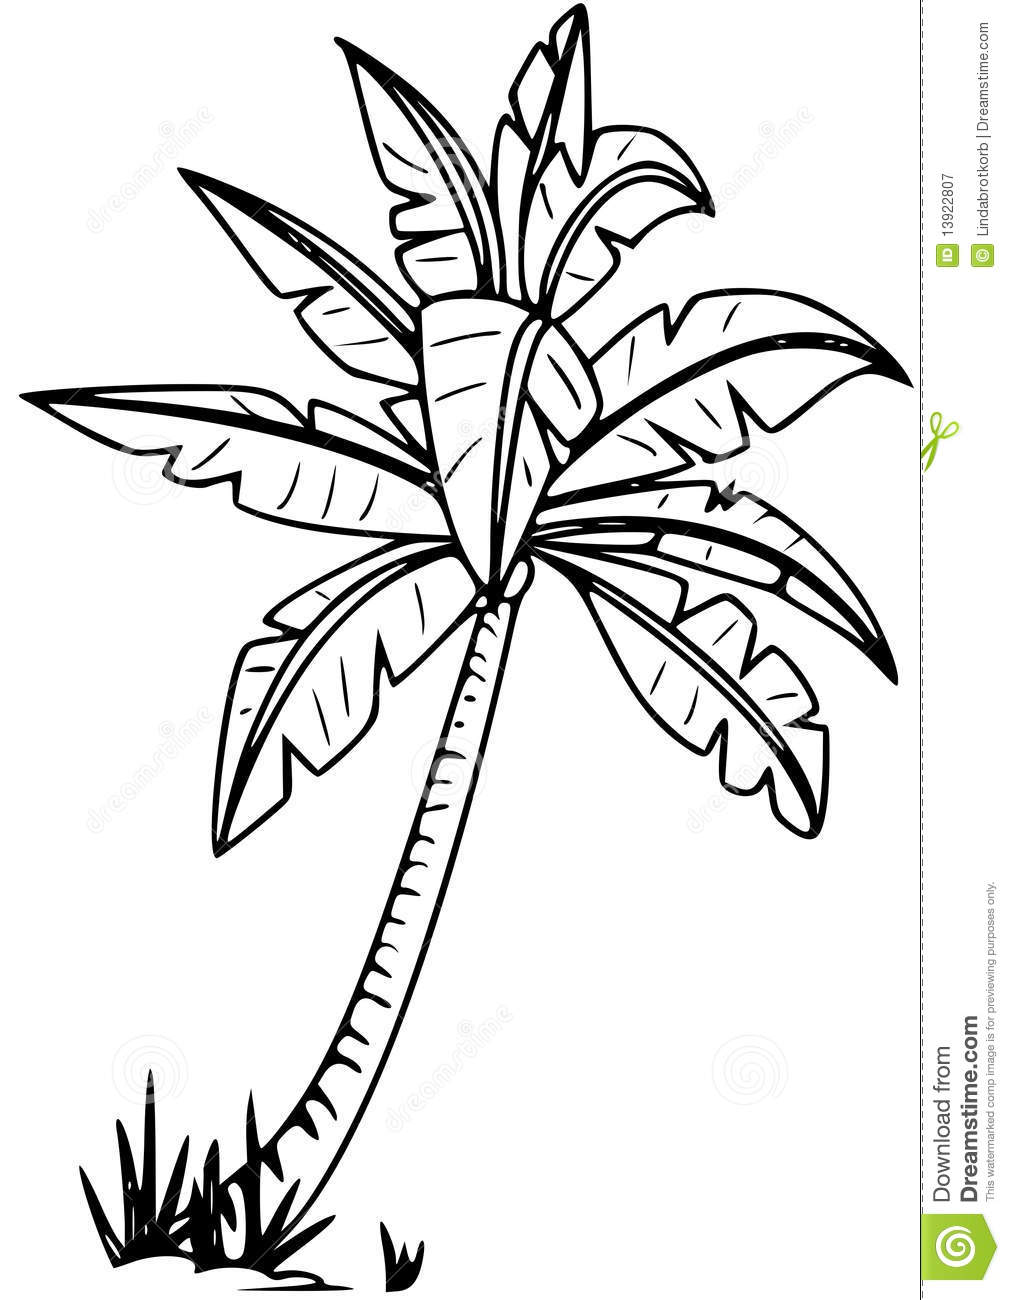 Palm tree stock vector. Illustration of lineart, coconut - 13922807